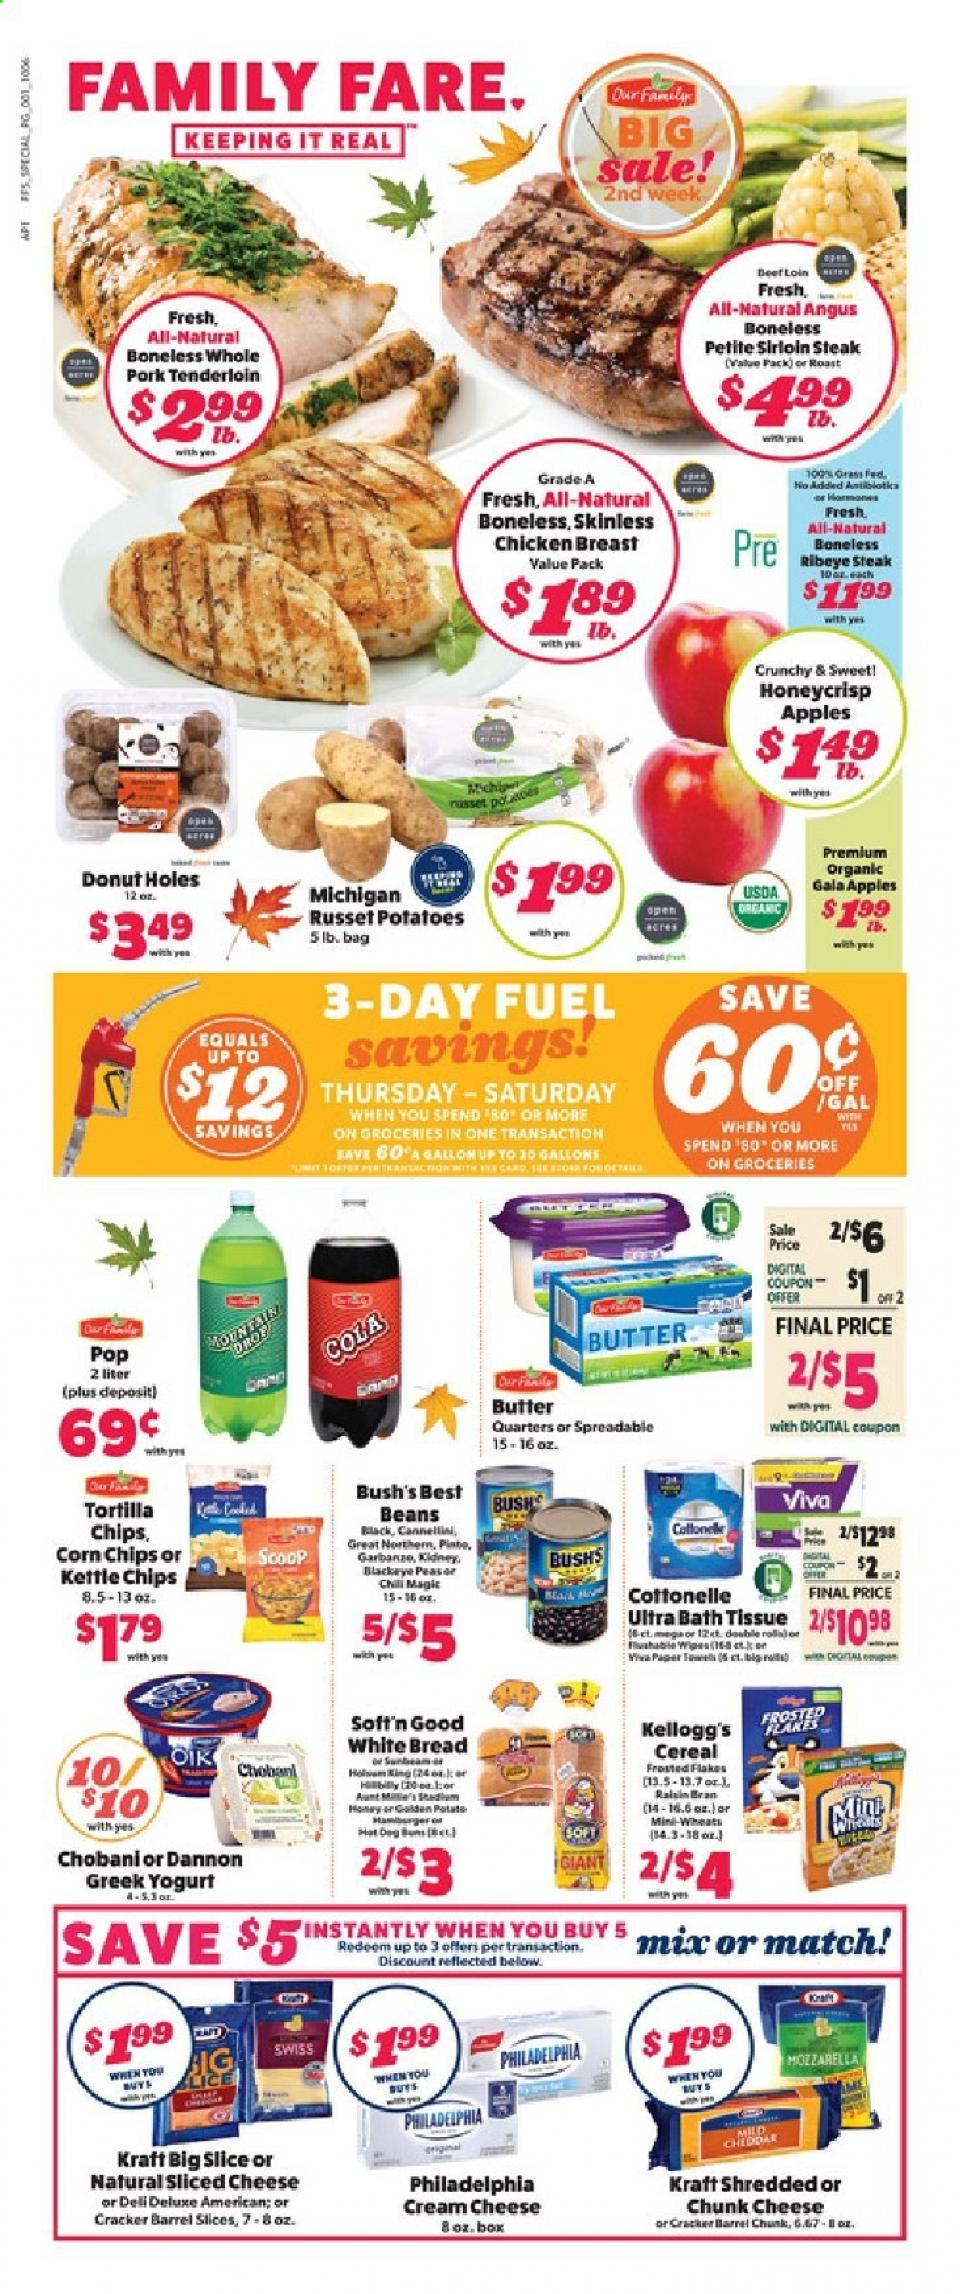 buy more and spend less with family fare ad oct 6 12 2019